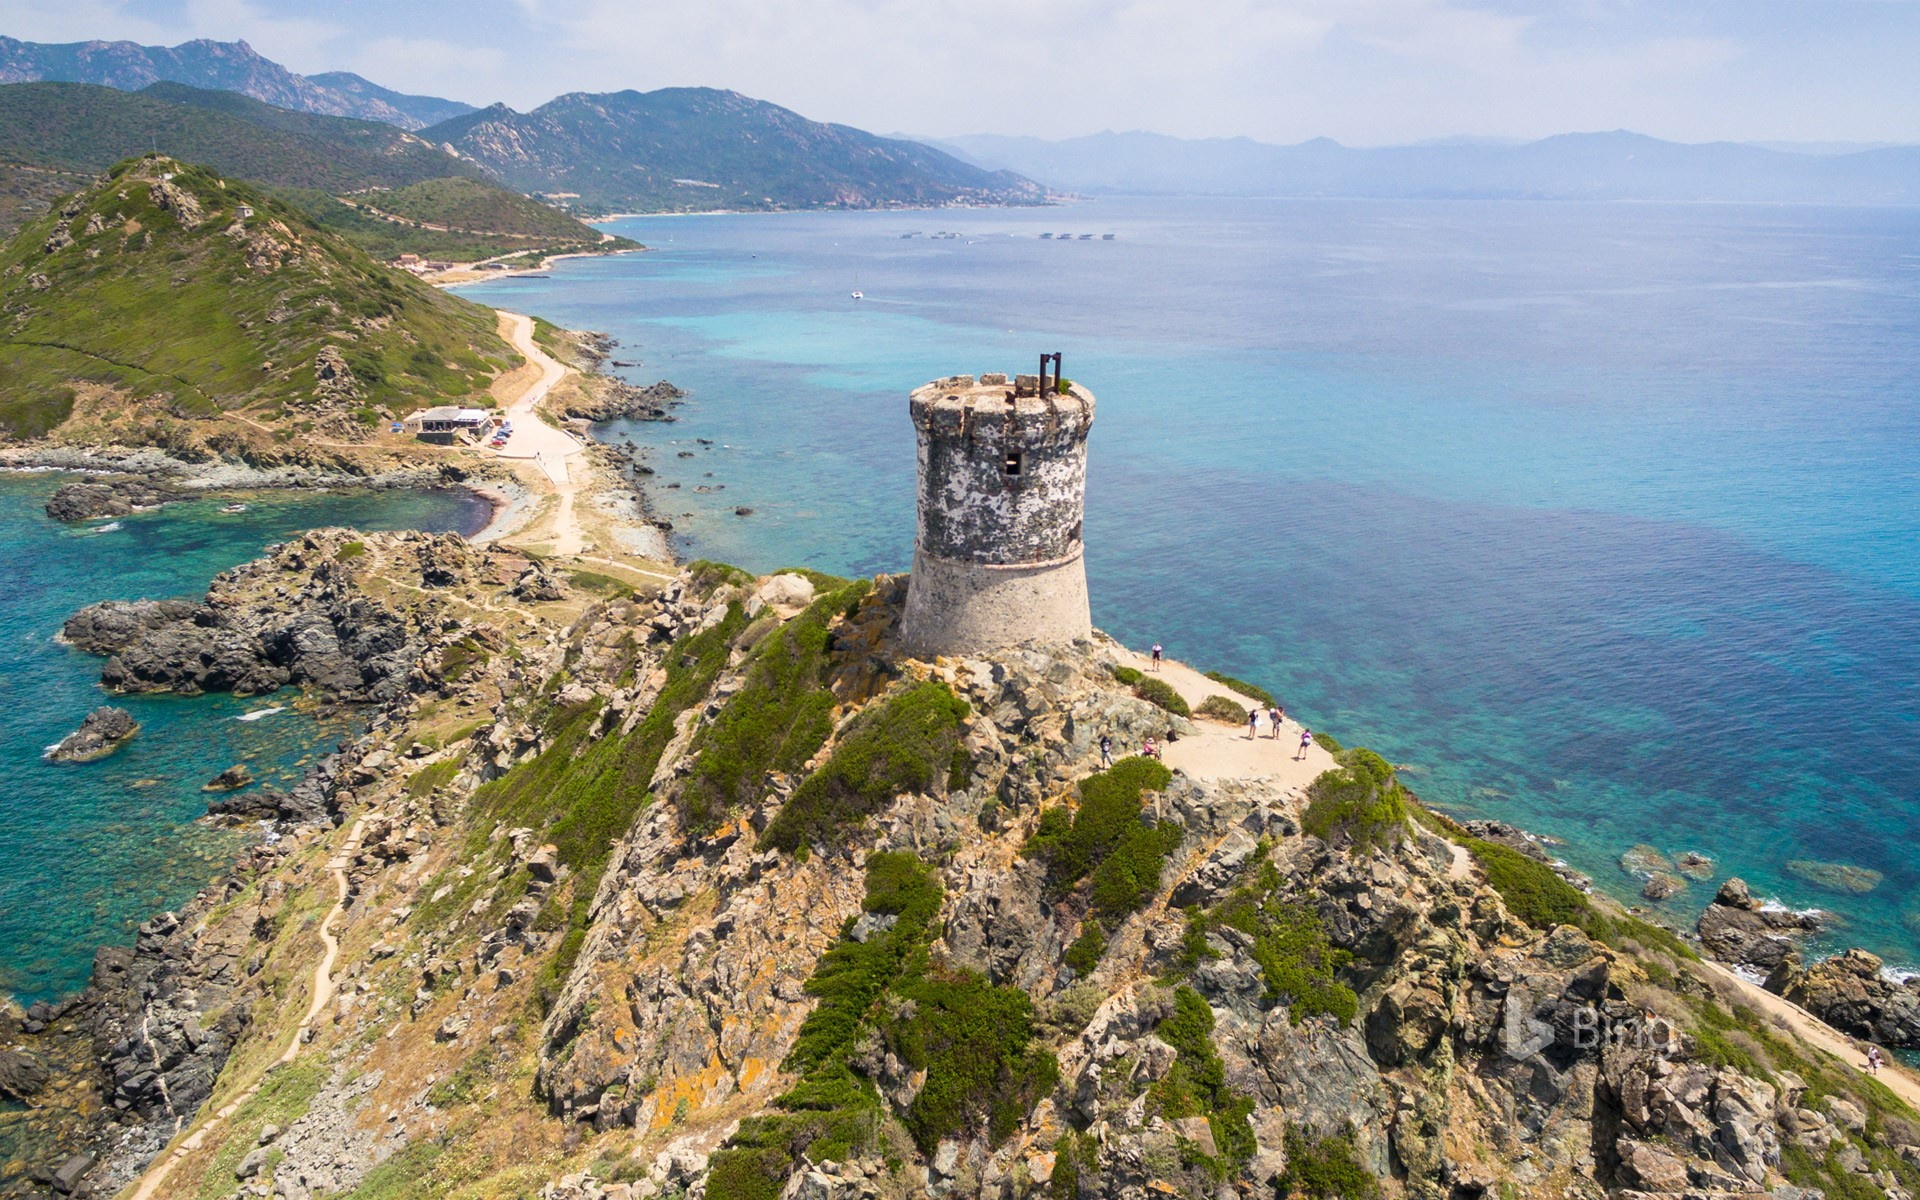 Aerial view of the Sanguinaires Islands in Corsica, France